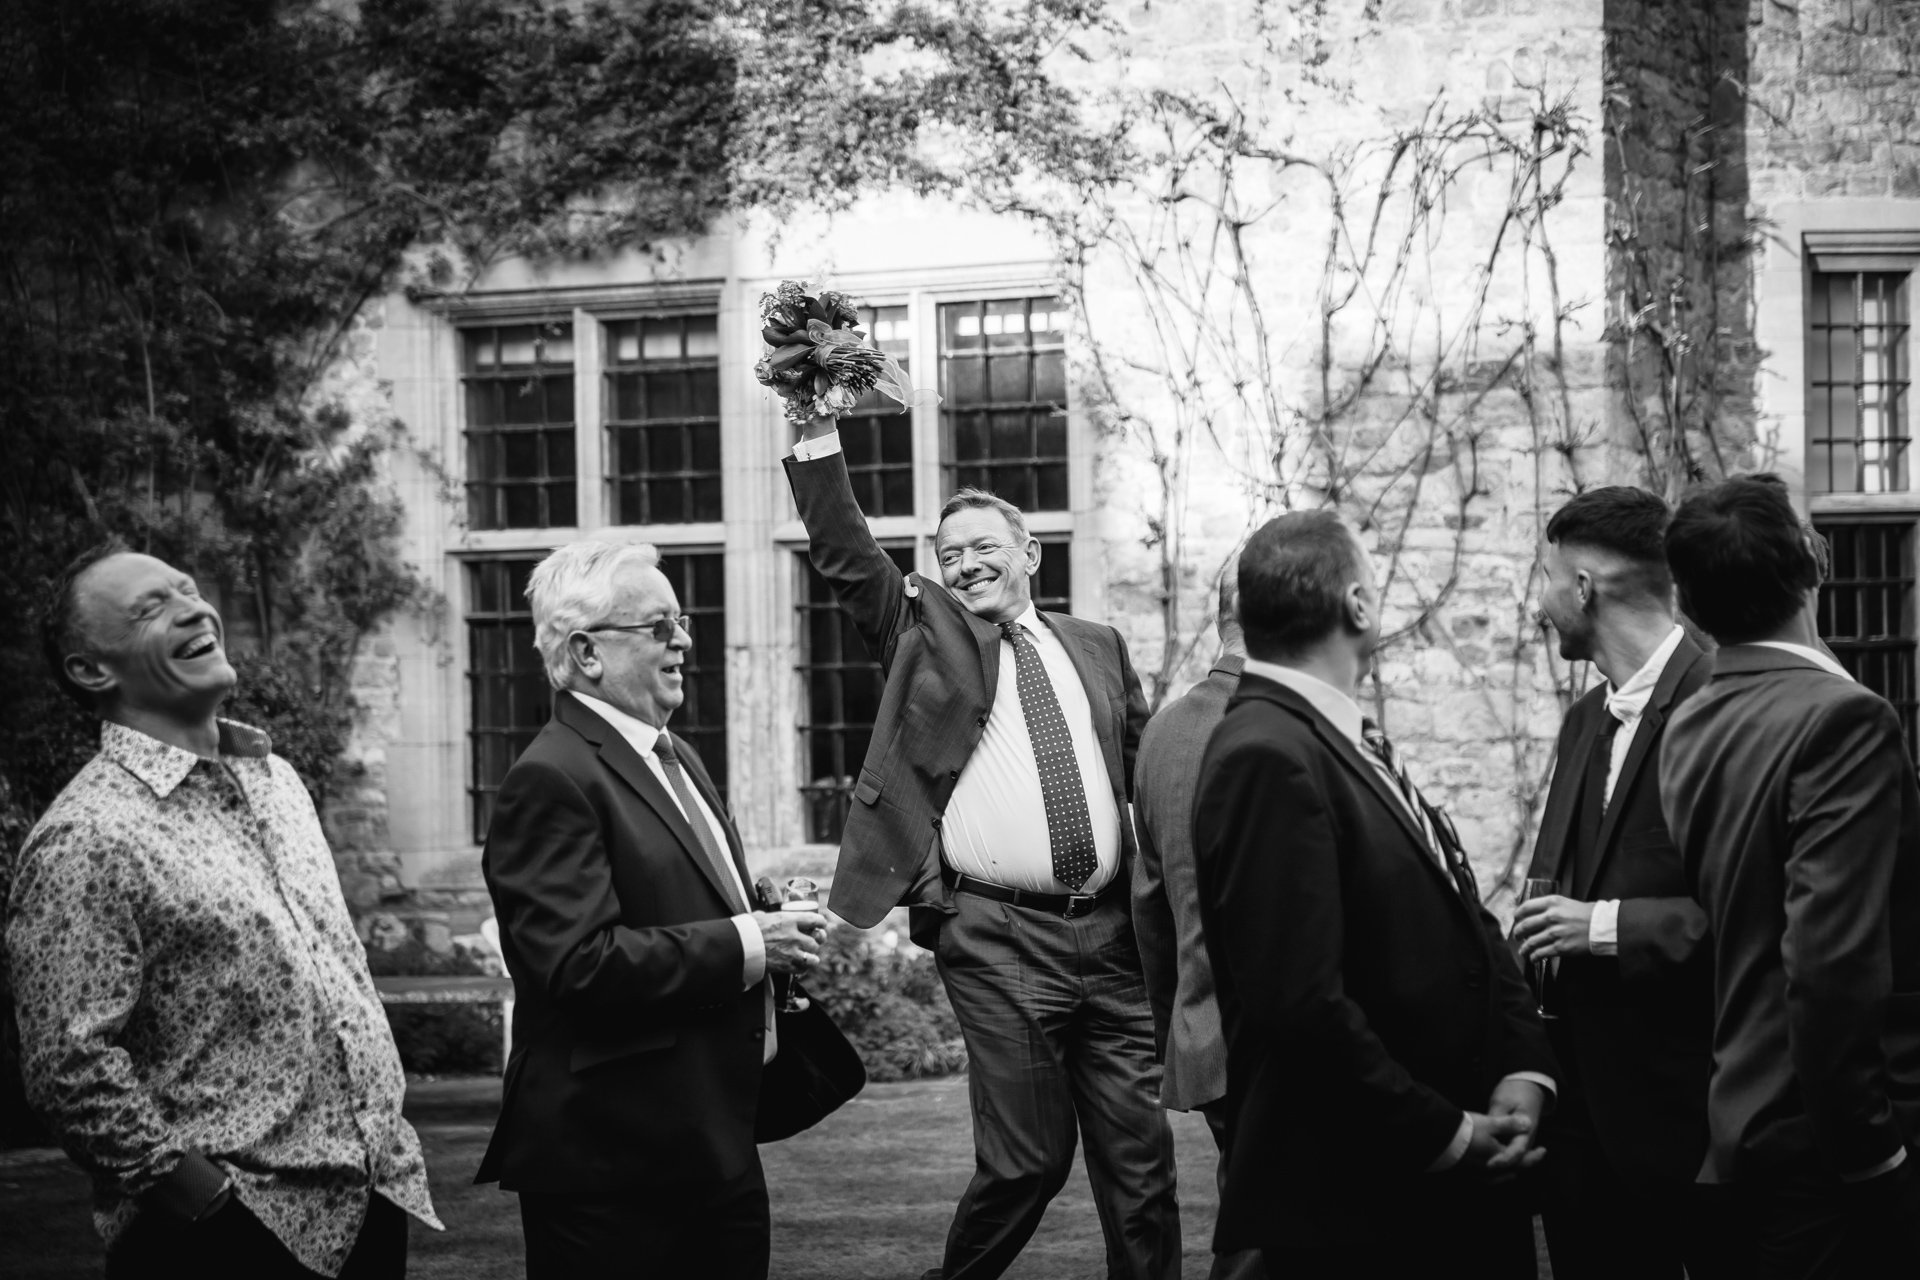 Male guest catches bouquet in the Courtyard at Allington Castle